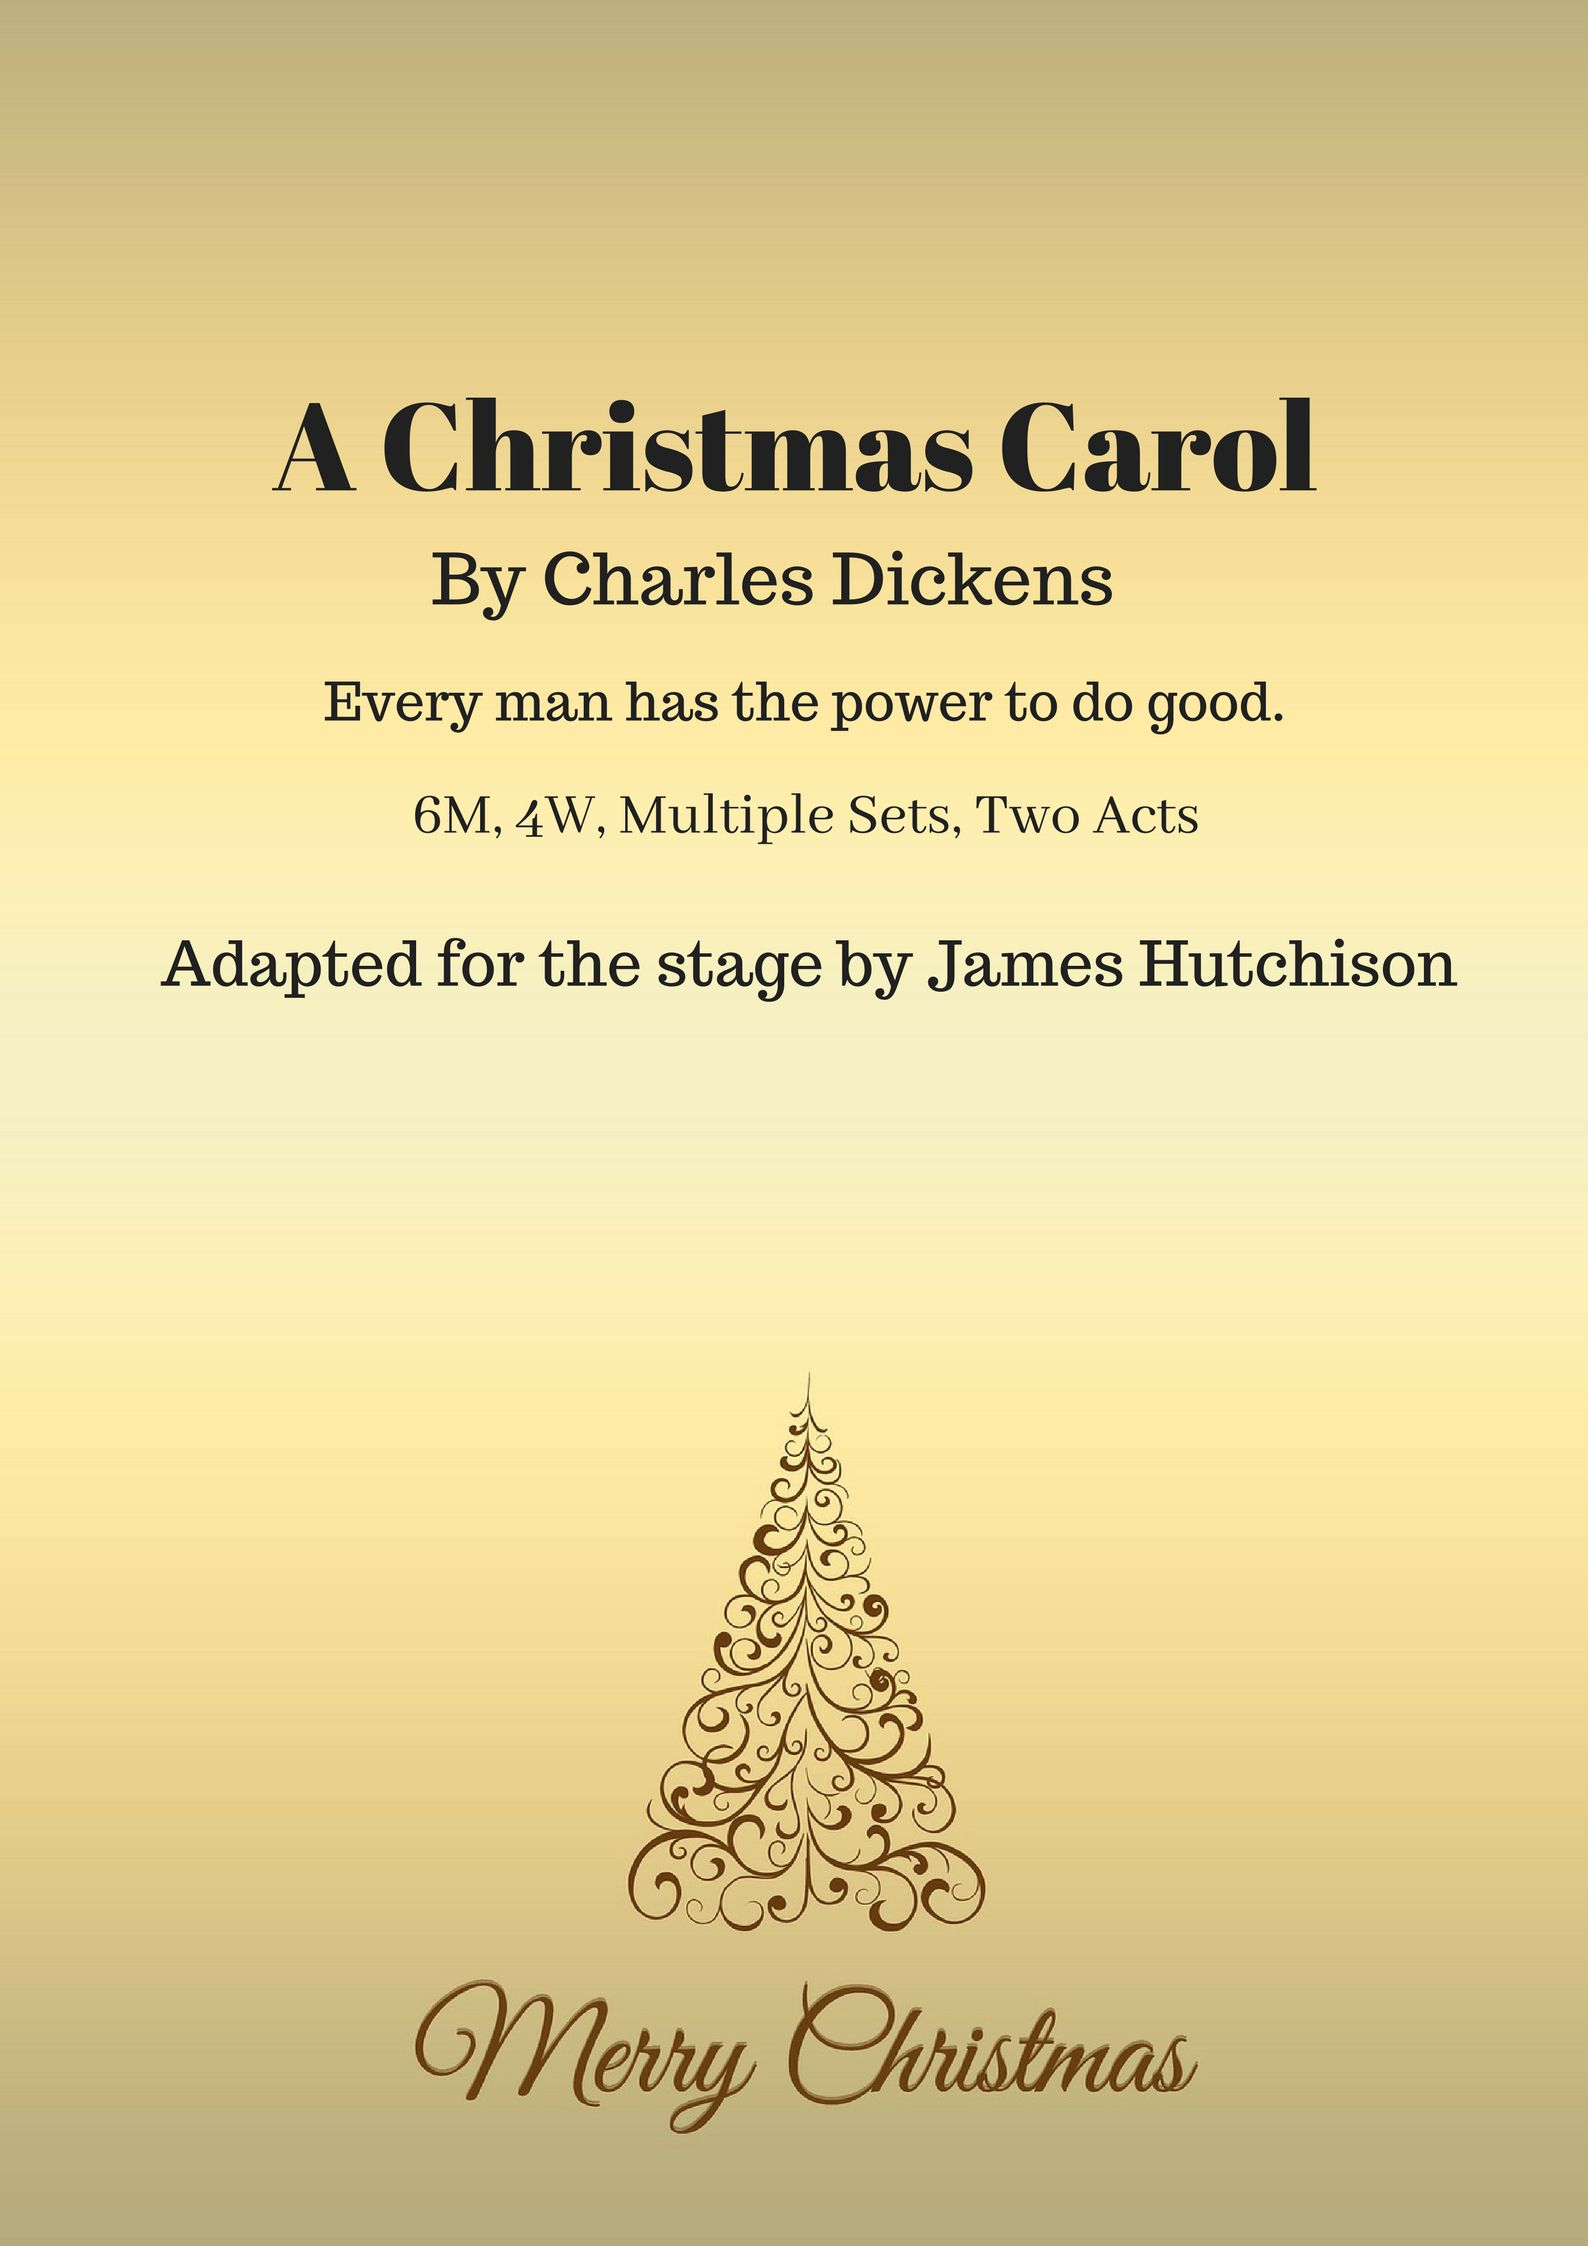 a christmas carol small cast download script for free james